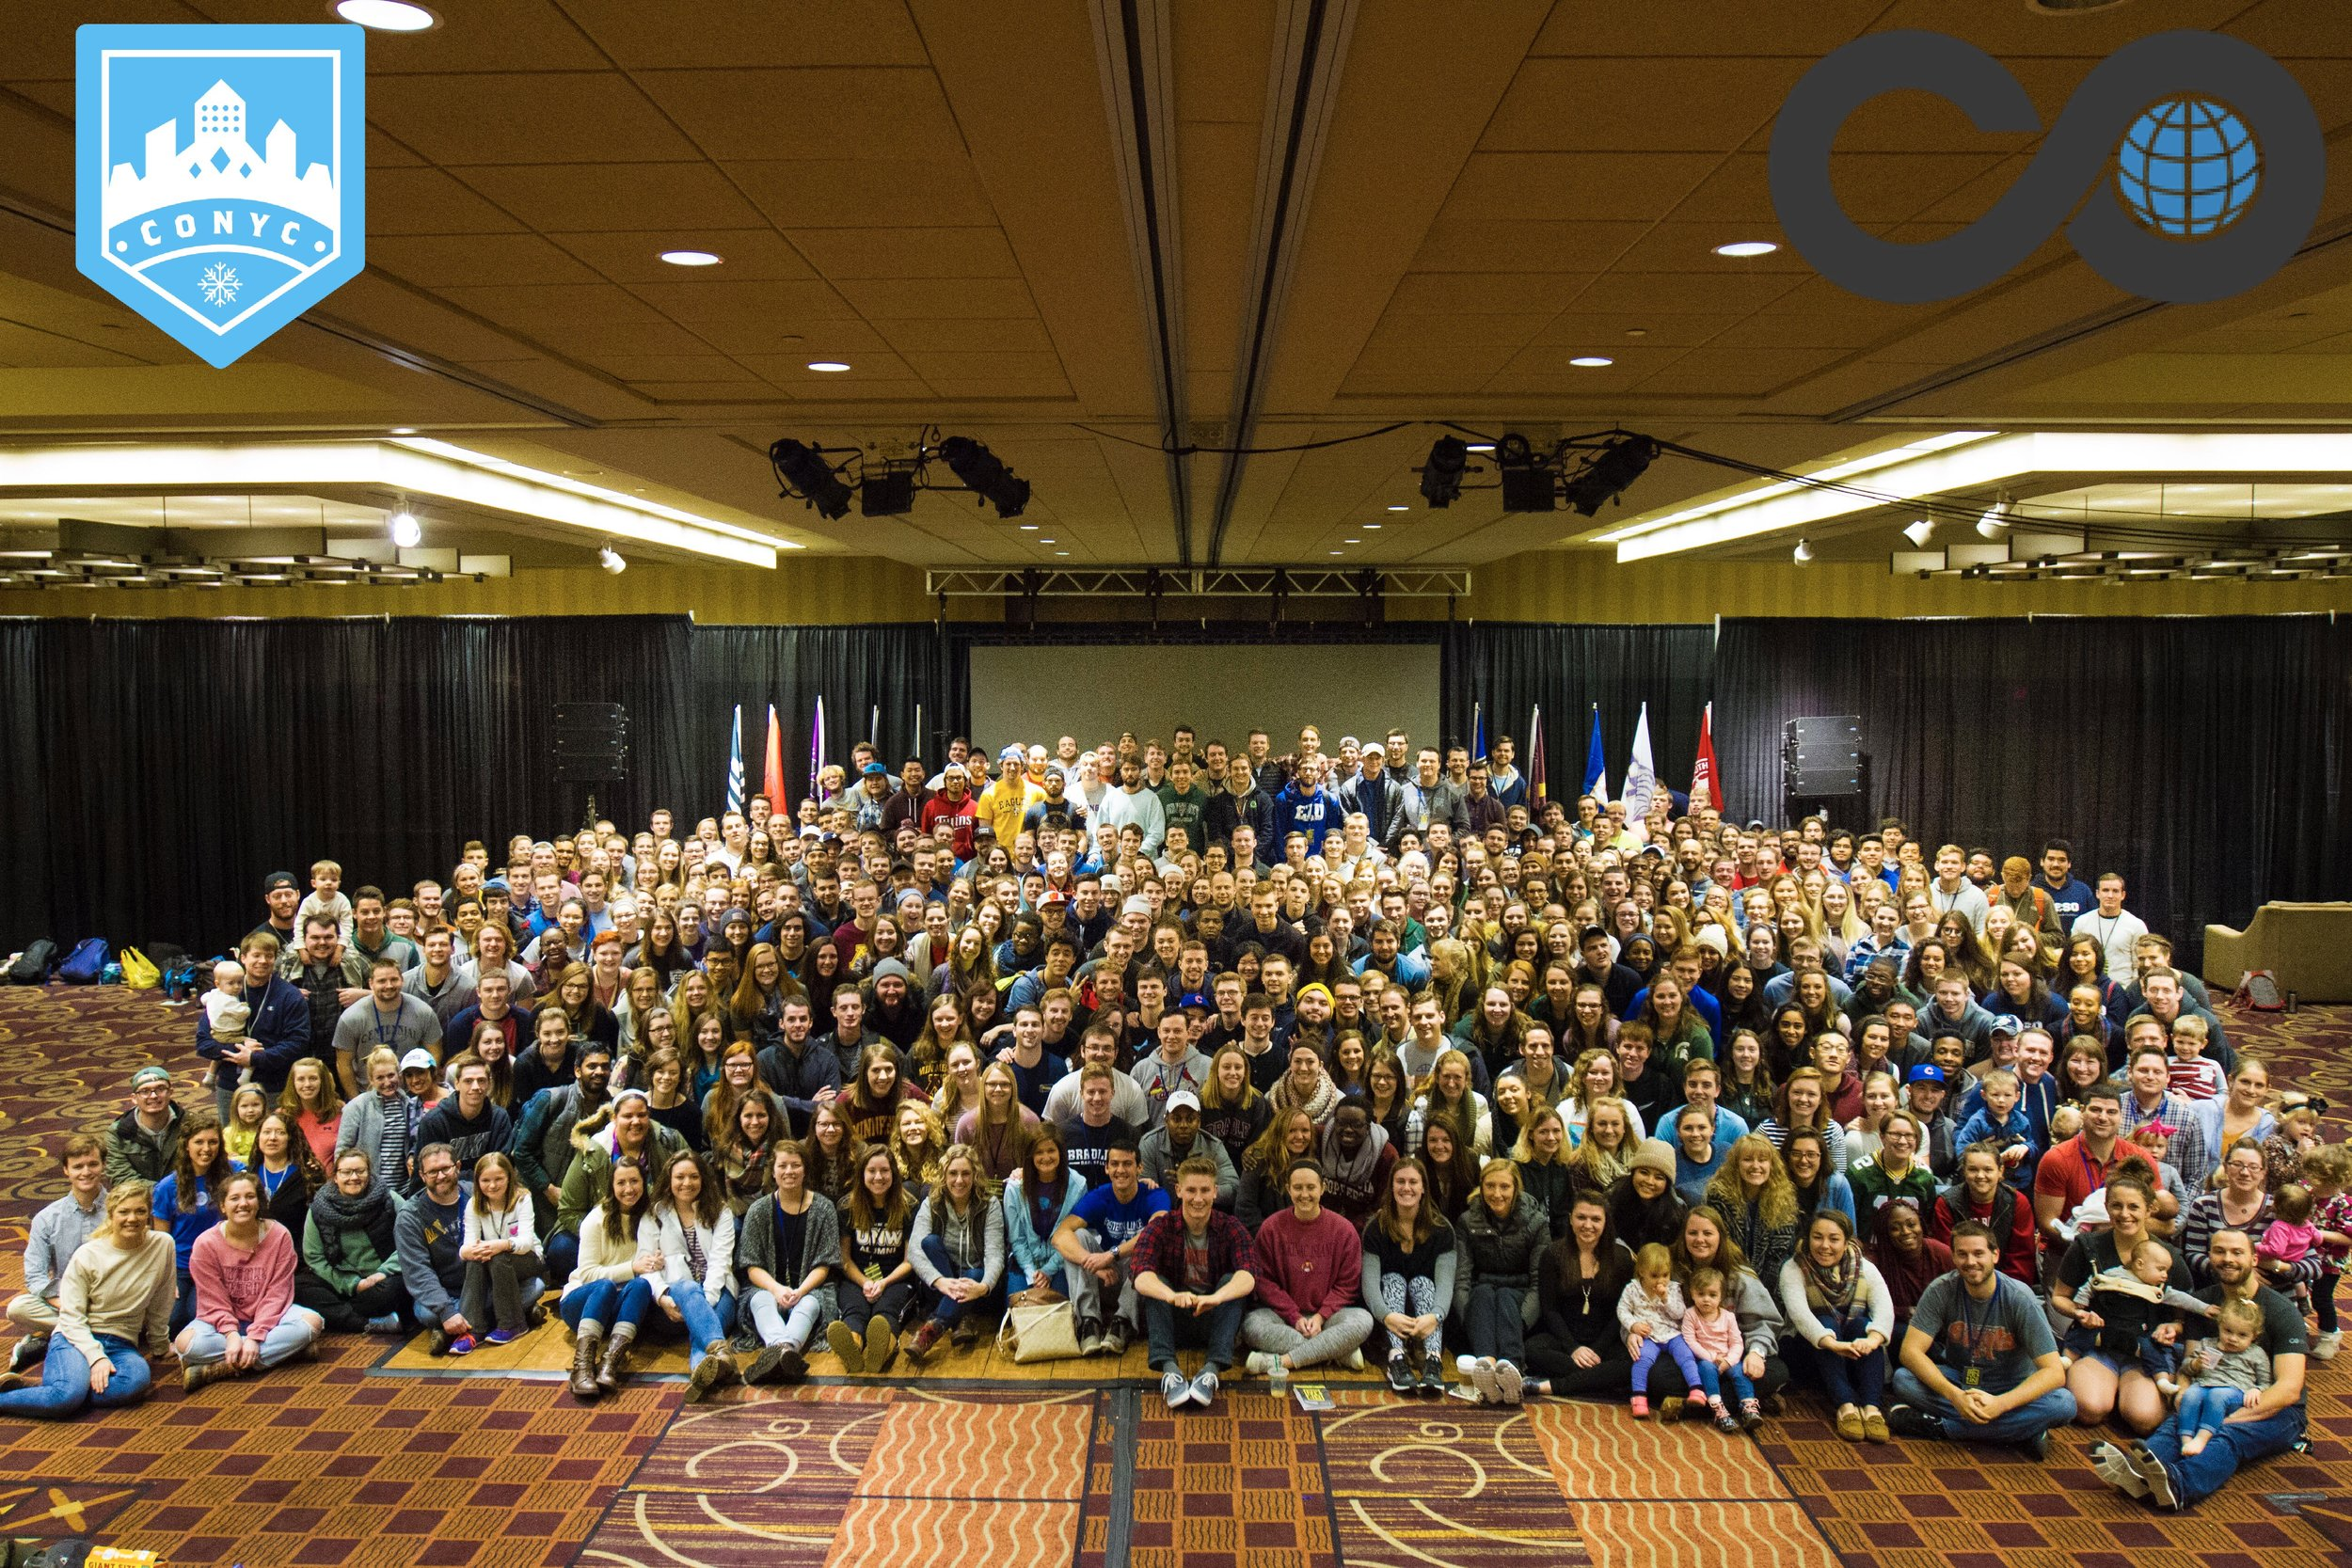 2016 CONYC Conference Attendees